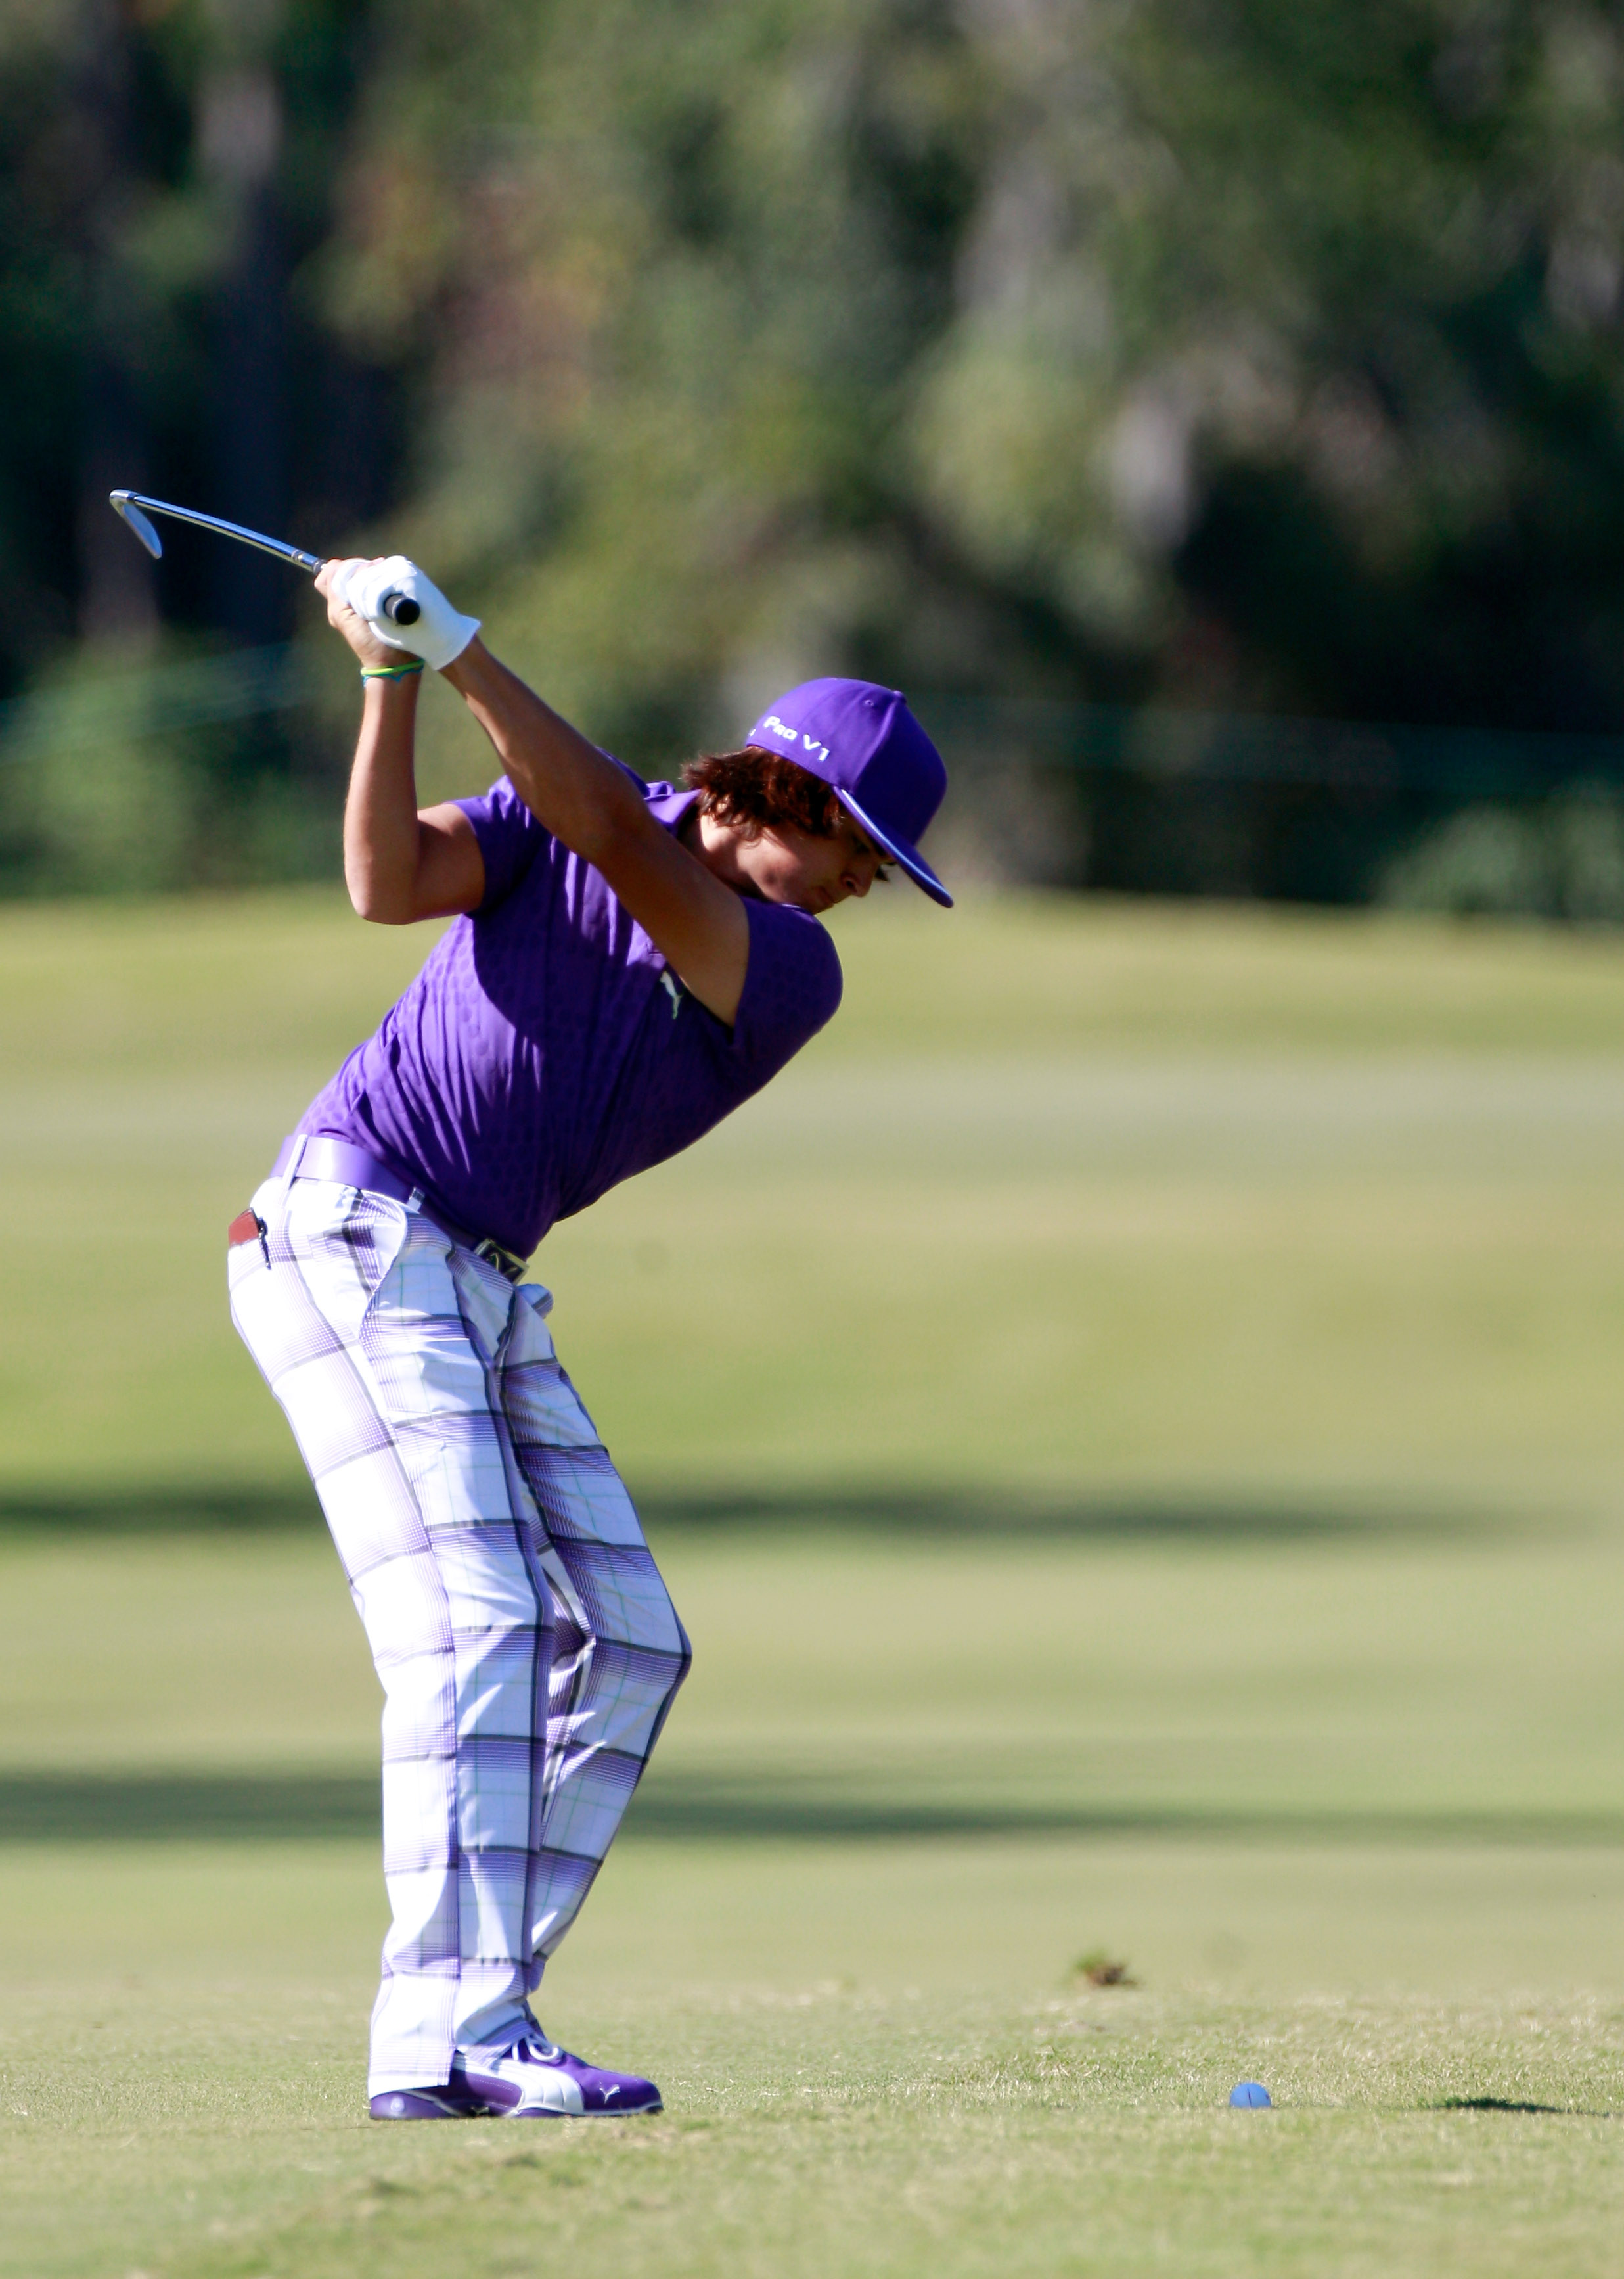 LAKE BUENA VISTA, FL - NOVEMBER 13:  Rickie Fowler hits a shot on the 1st hole during the third round of the Children's Miracle Network Classic at the Disney Palm and Magnolia course on November 13, 2010 in Lake Buena Vista, Florida.  (Photo by Sam Greenw